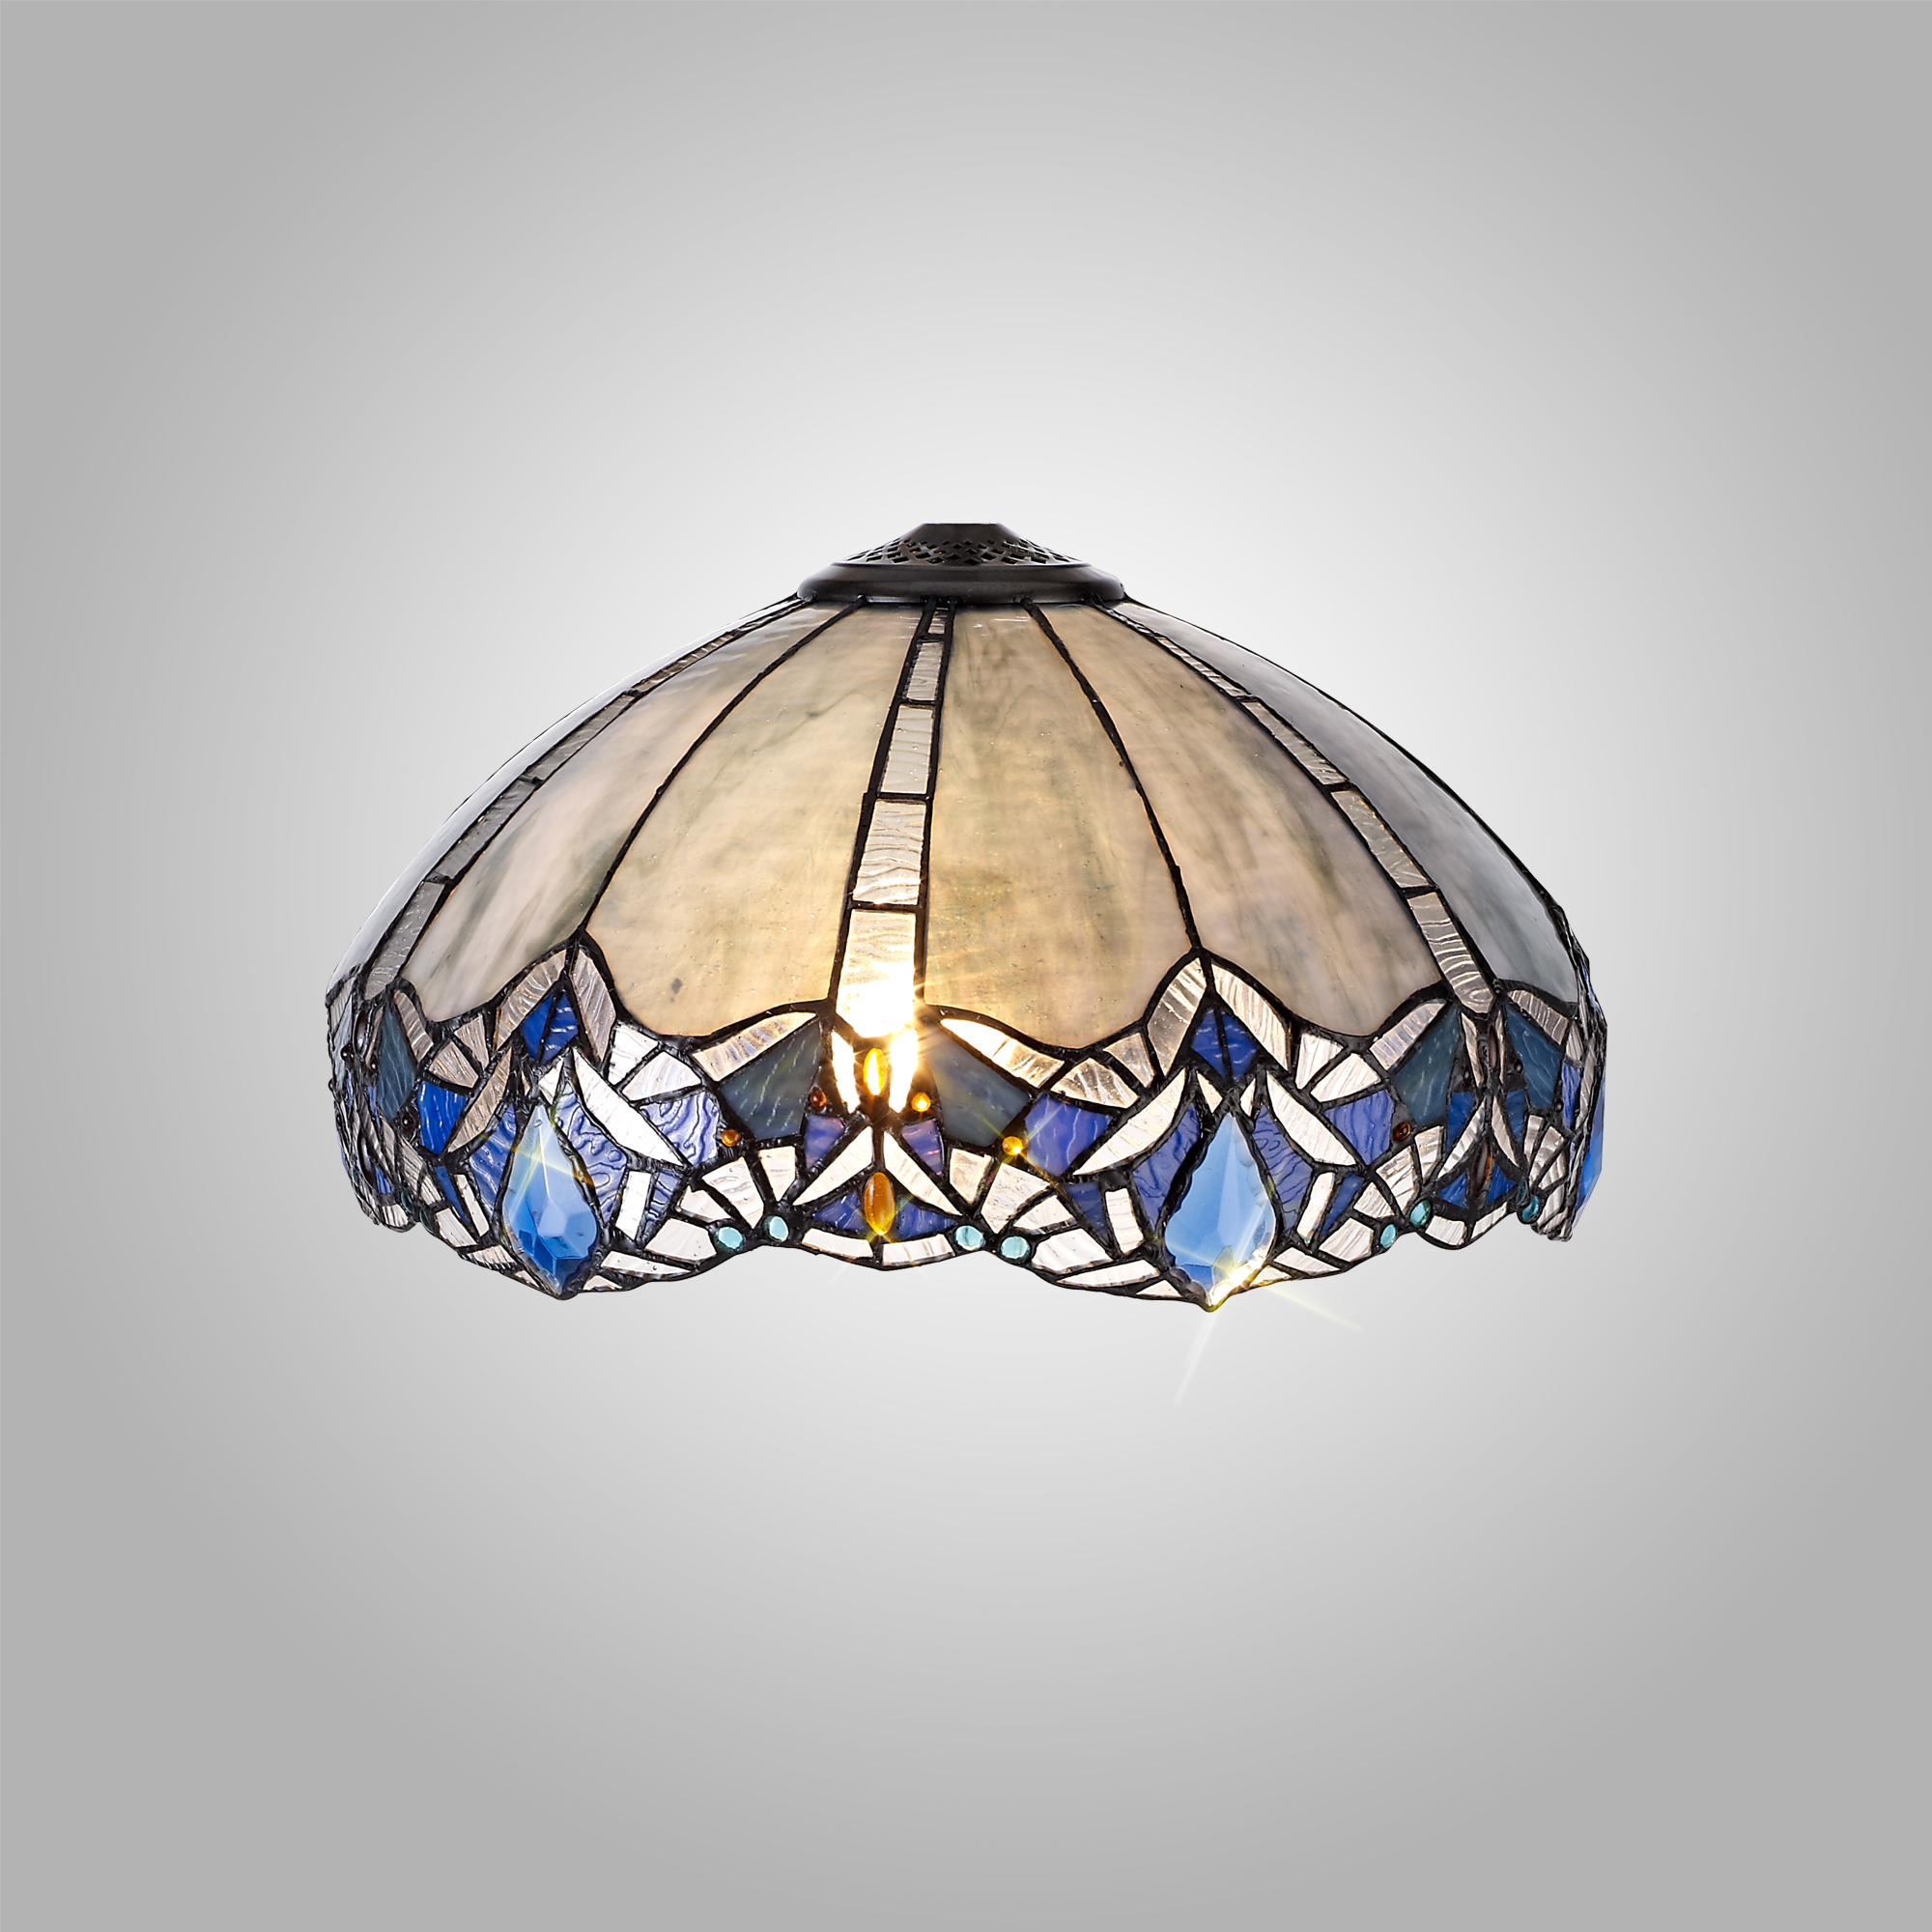 Tiffany 40cm Shade Only Suitable For Pendant/Ceiling/Table Lamp, Blue/Clear Crystal